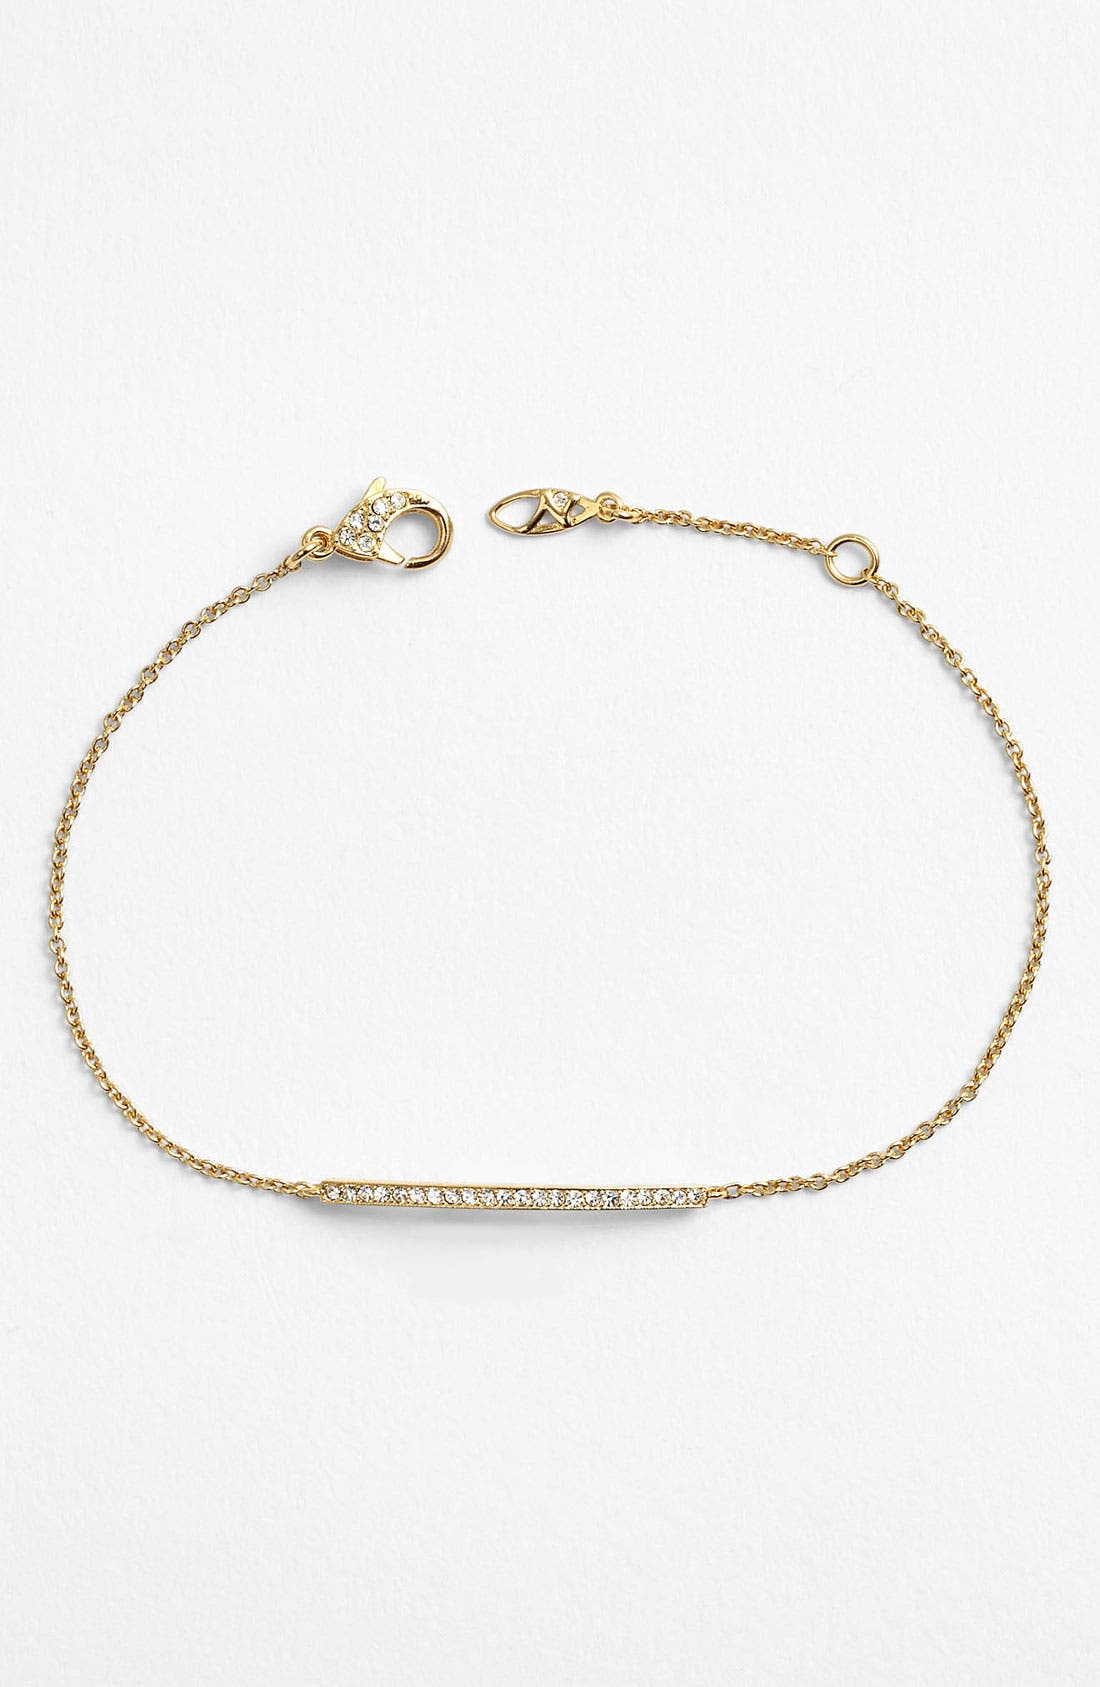 Alternate Image 1 Selected - Nadri Bar Station Bracelet (Nordstrom Exclusive)